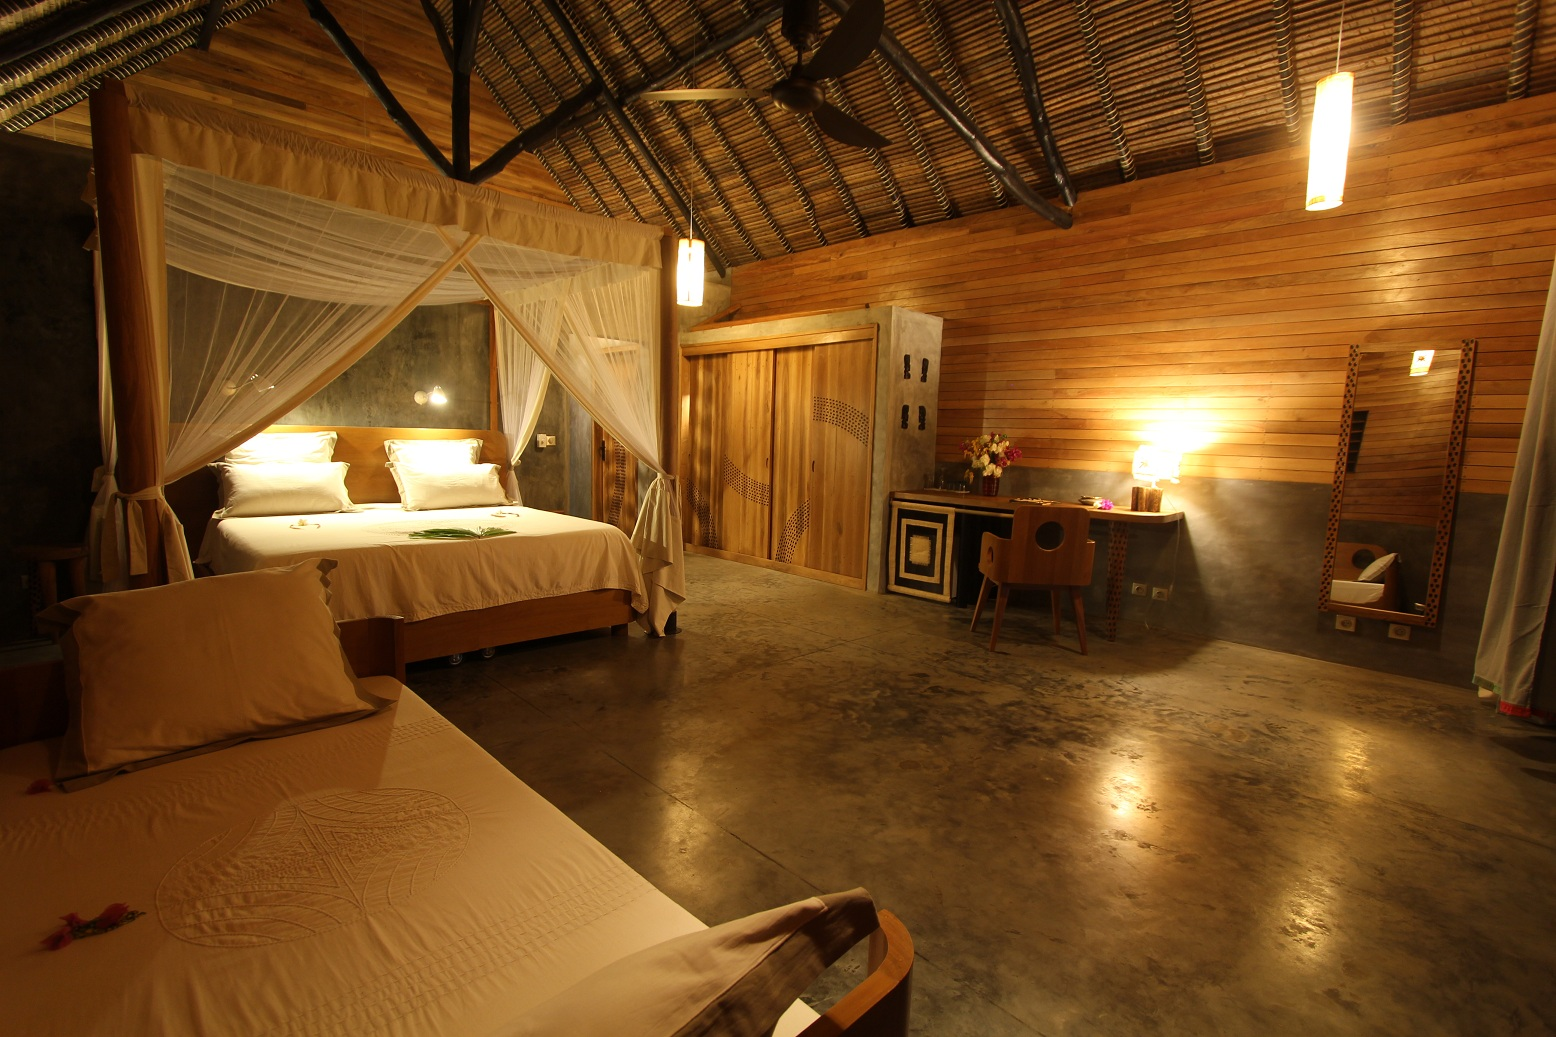 Luxury Rooms at L'Heure Bleue Hotel